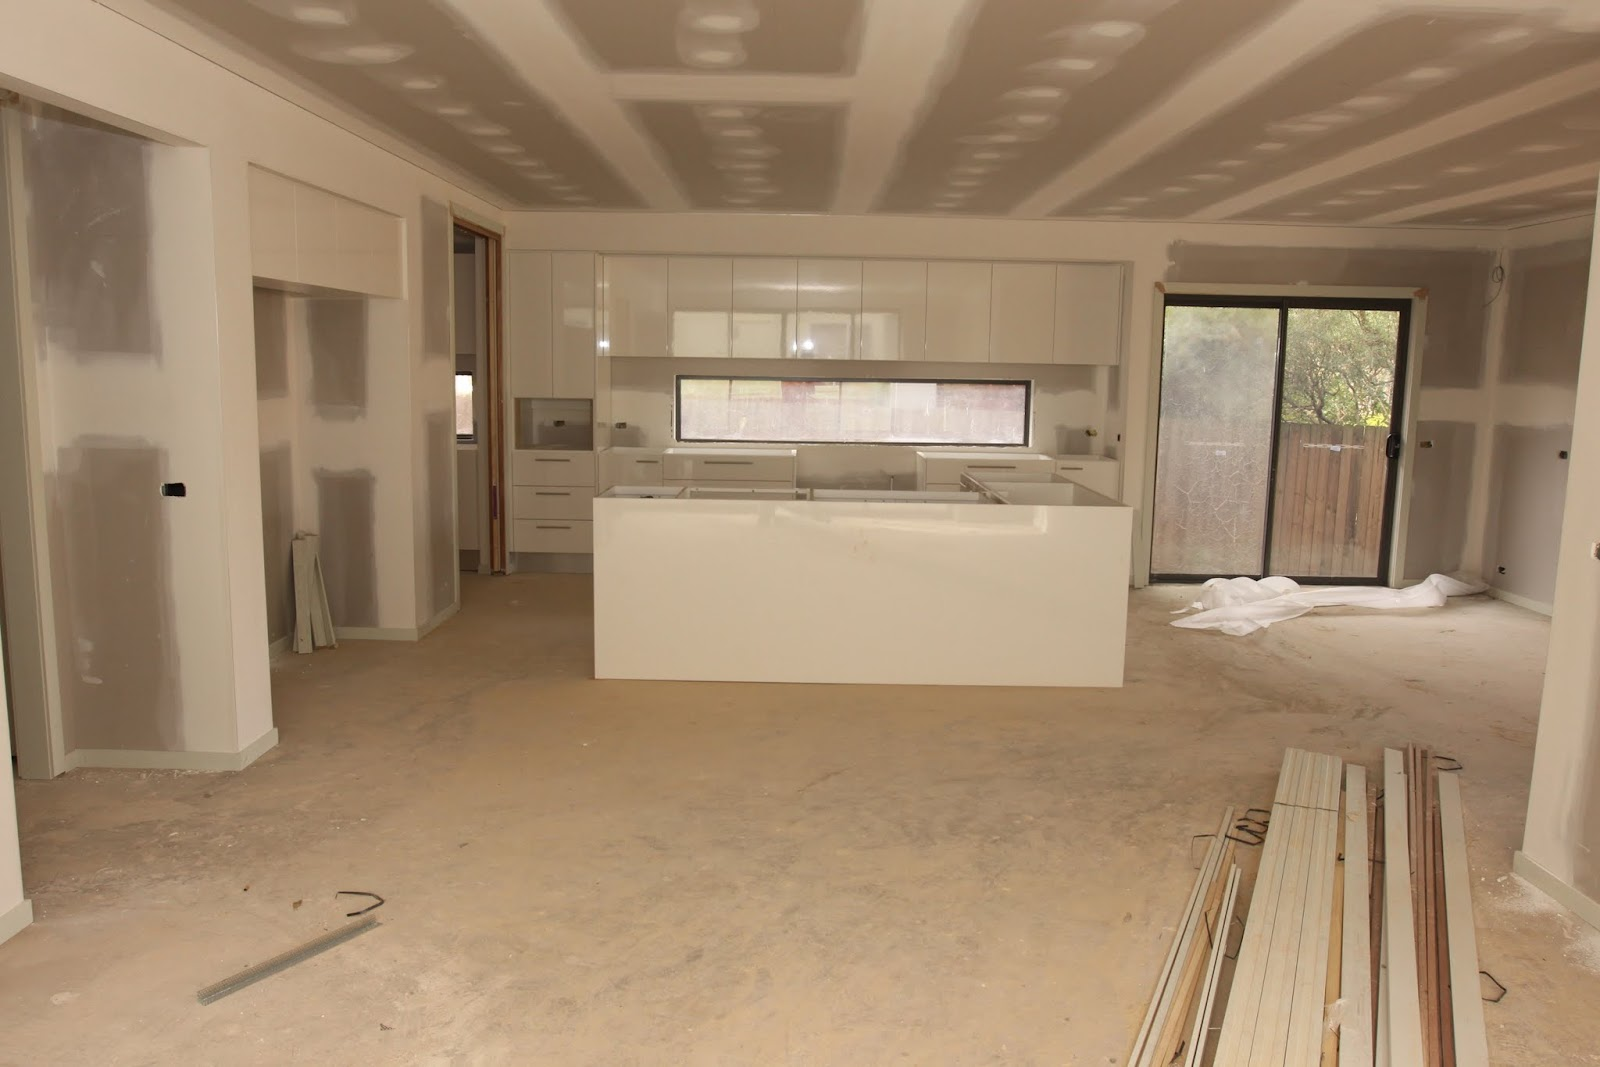 Our metricon nolan 41 journey kitchen and vanity cabinetry - Yay The Kitchen Installation Has Been Started